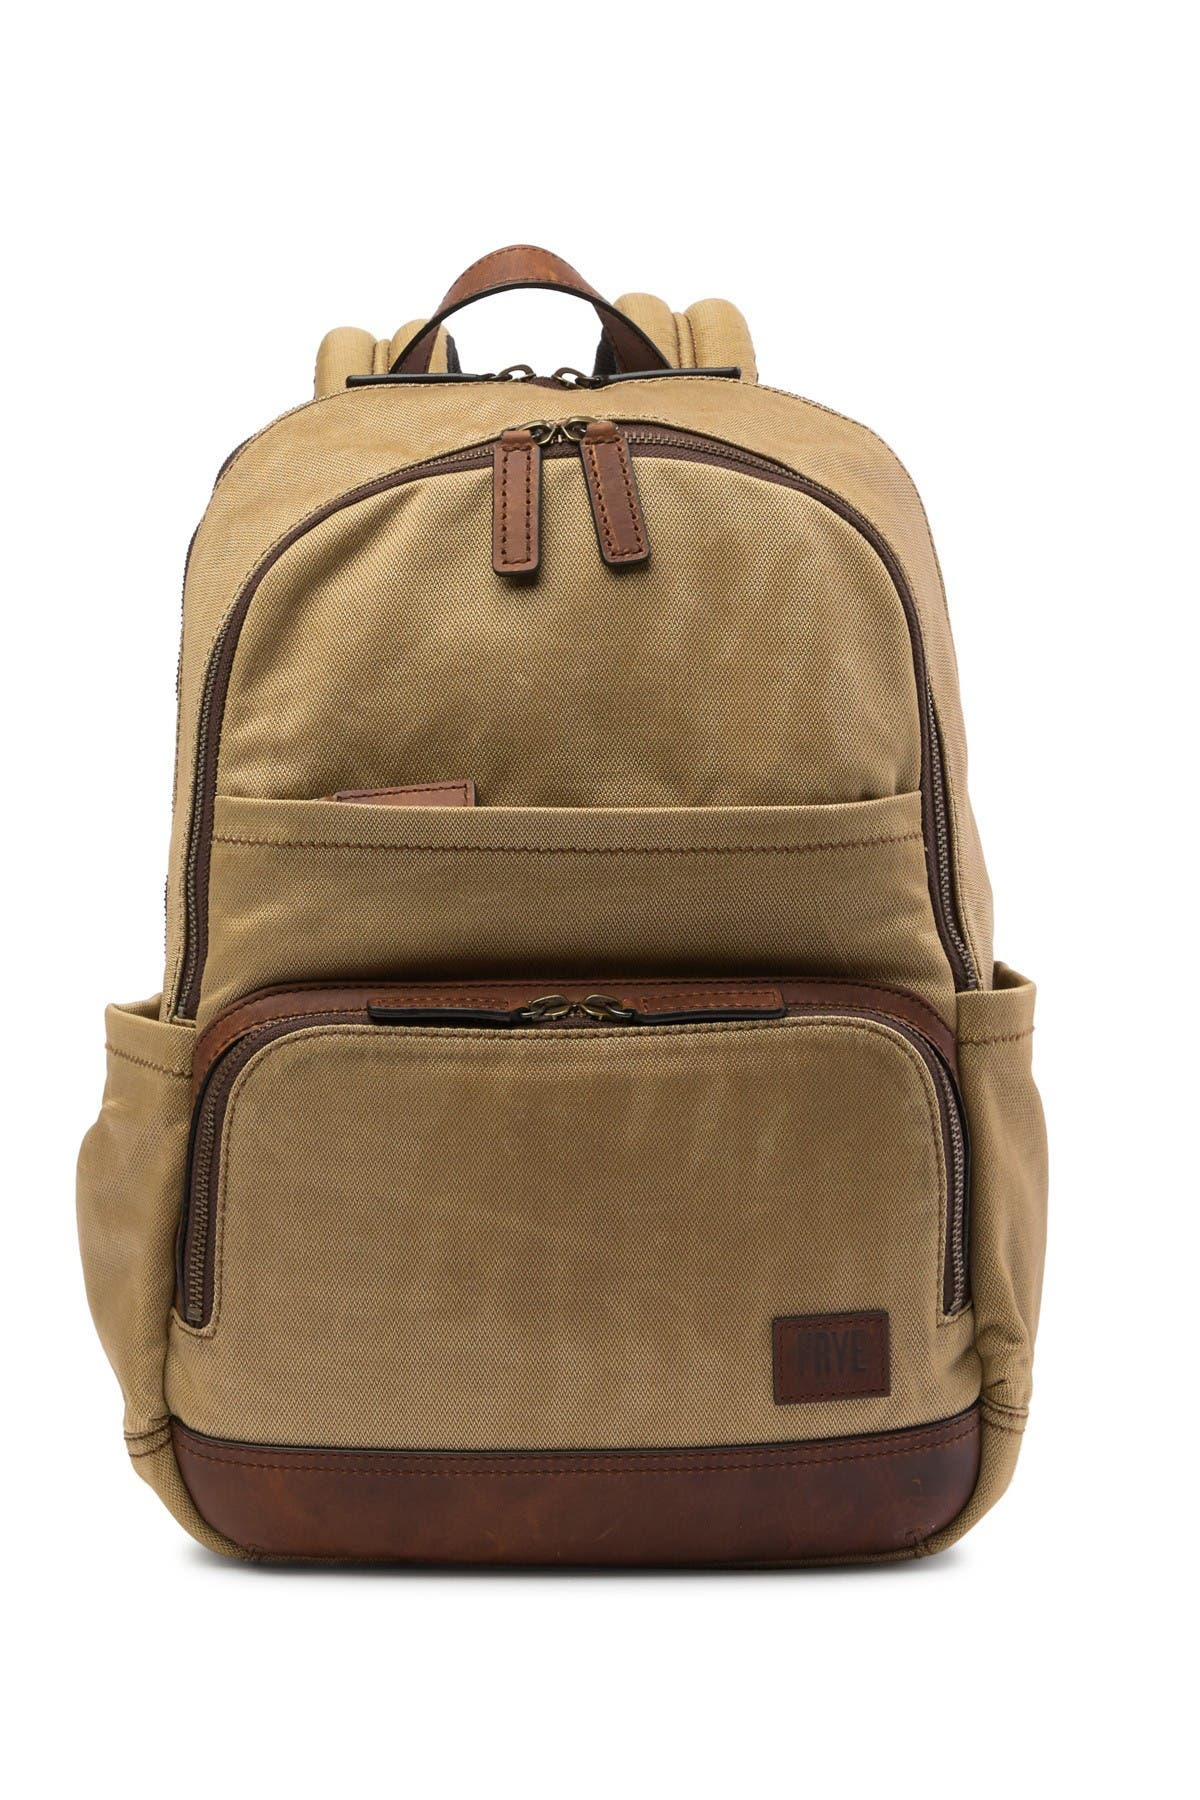 Image of Frye Carter Backpack